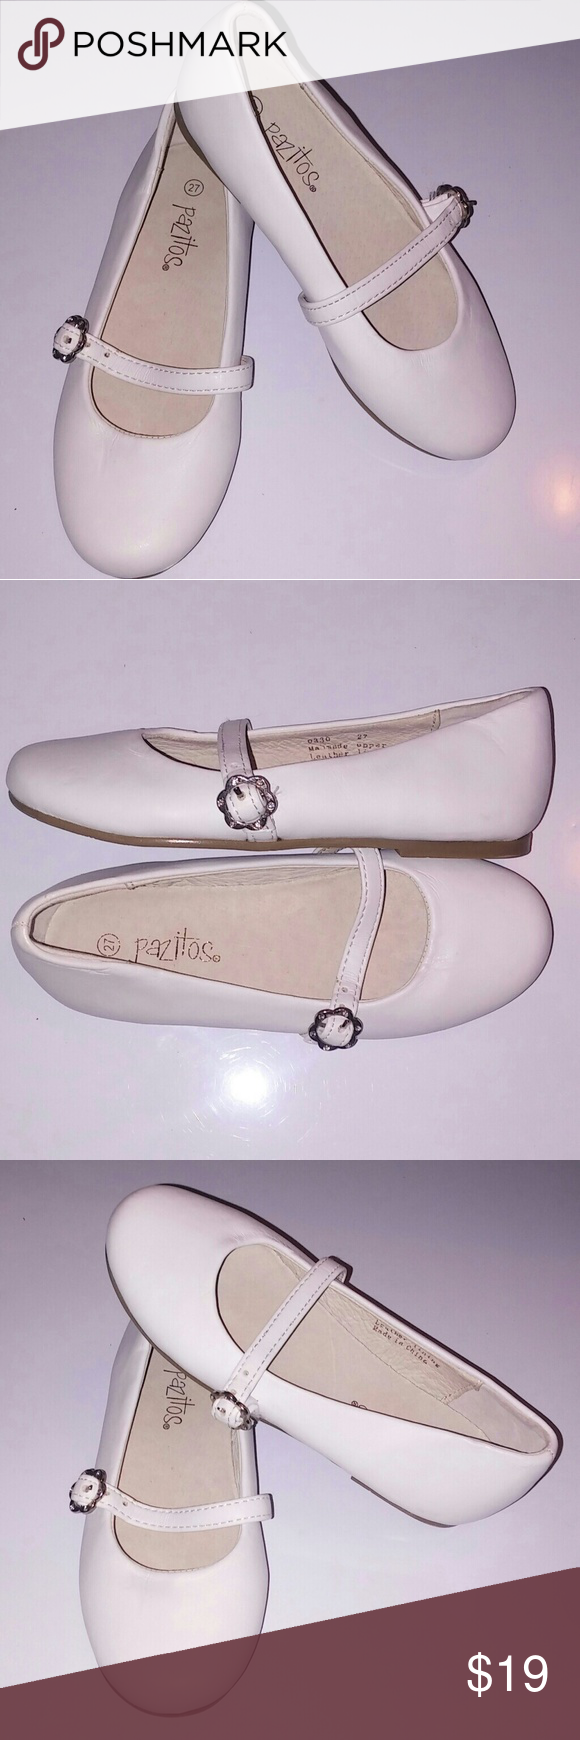 e9d5a114d6d4 Nw Pazitos Daisy Buckle Flat White Very cute flat has a thin strap with a  daisy